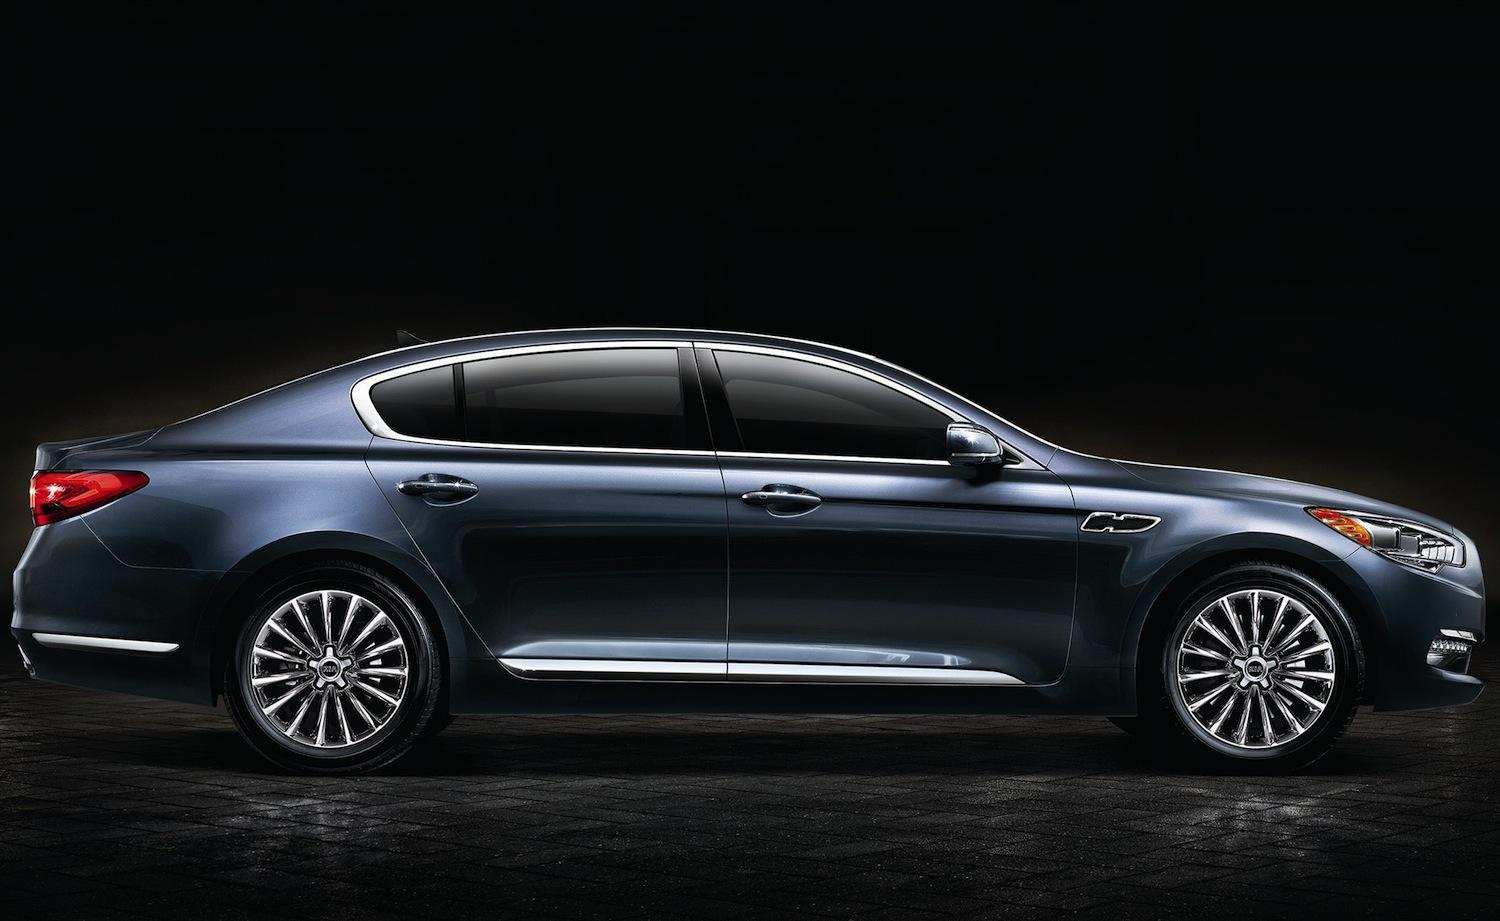 kia k900 70 000 flagship sedan confirmed for la auto show unveil digital trends. Black Bedroom Furniture Sets. Home Design Ideas